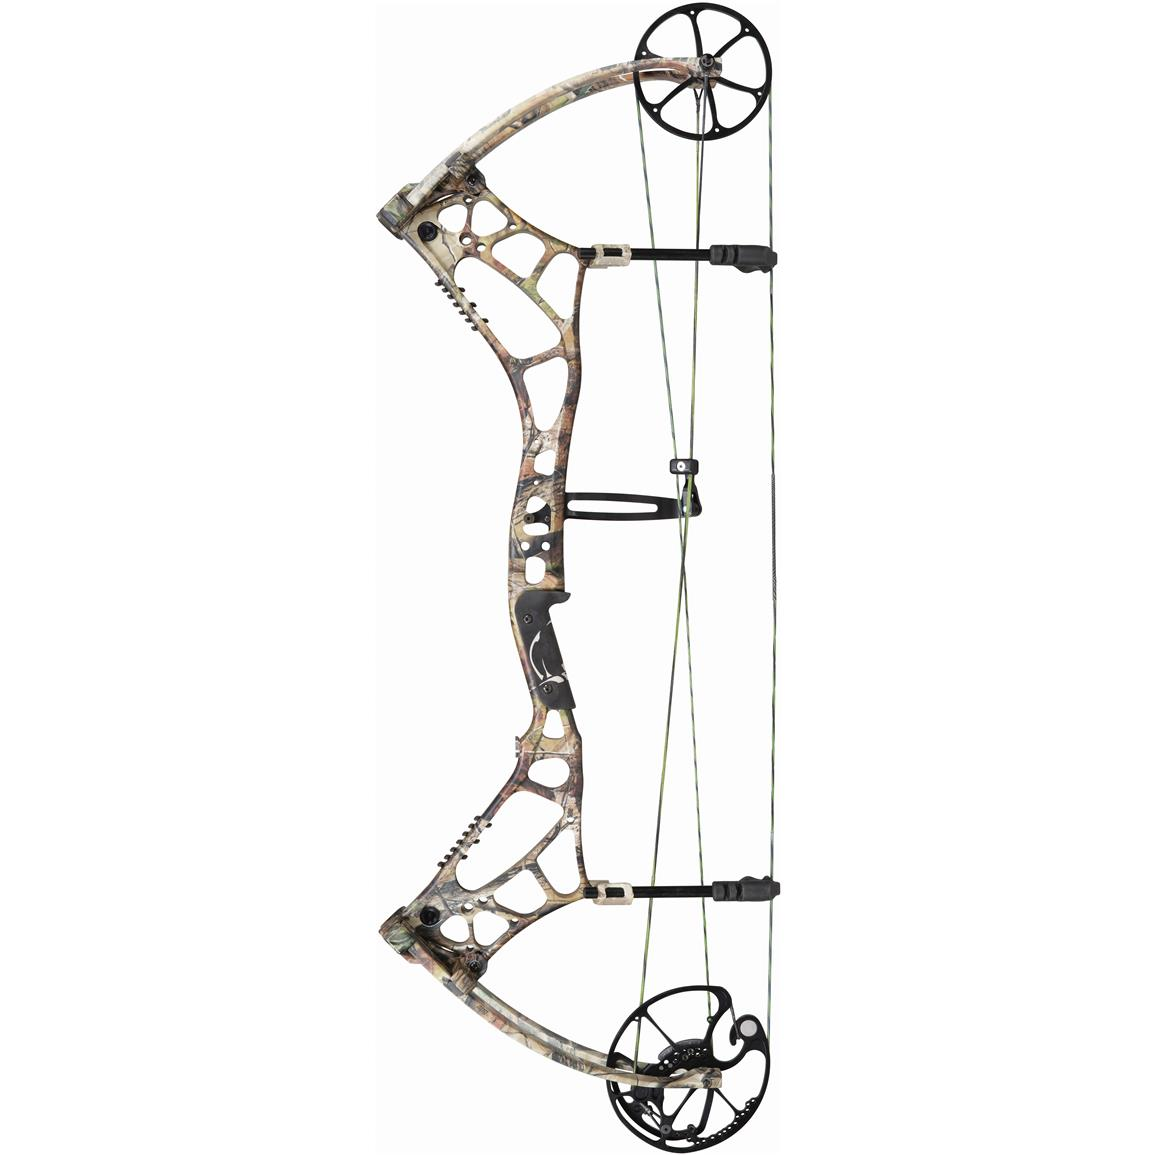 Bear Archery® Venue Compound Bow, Realtree